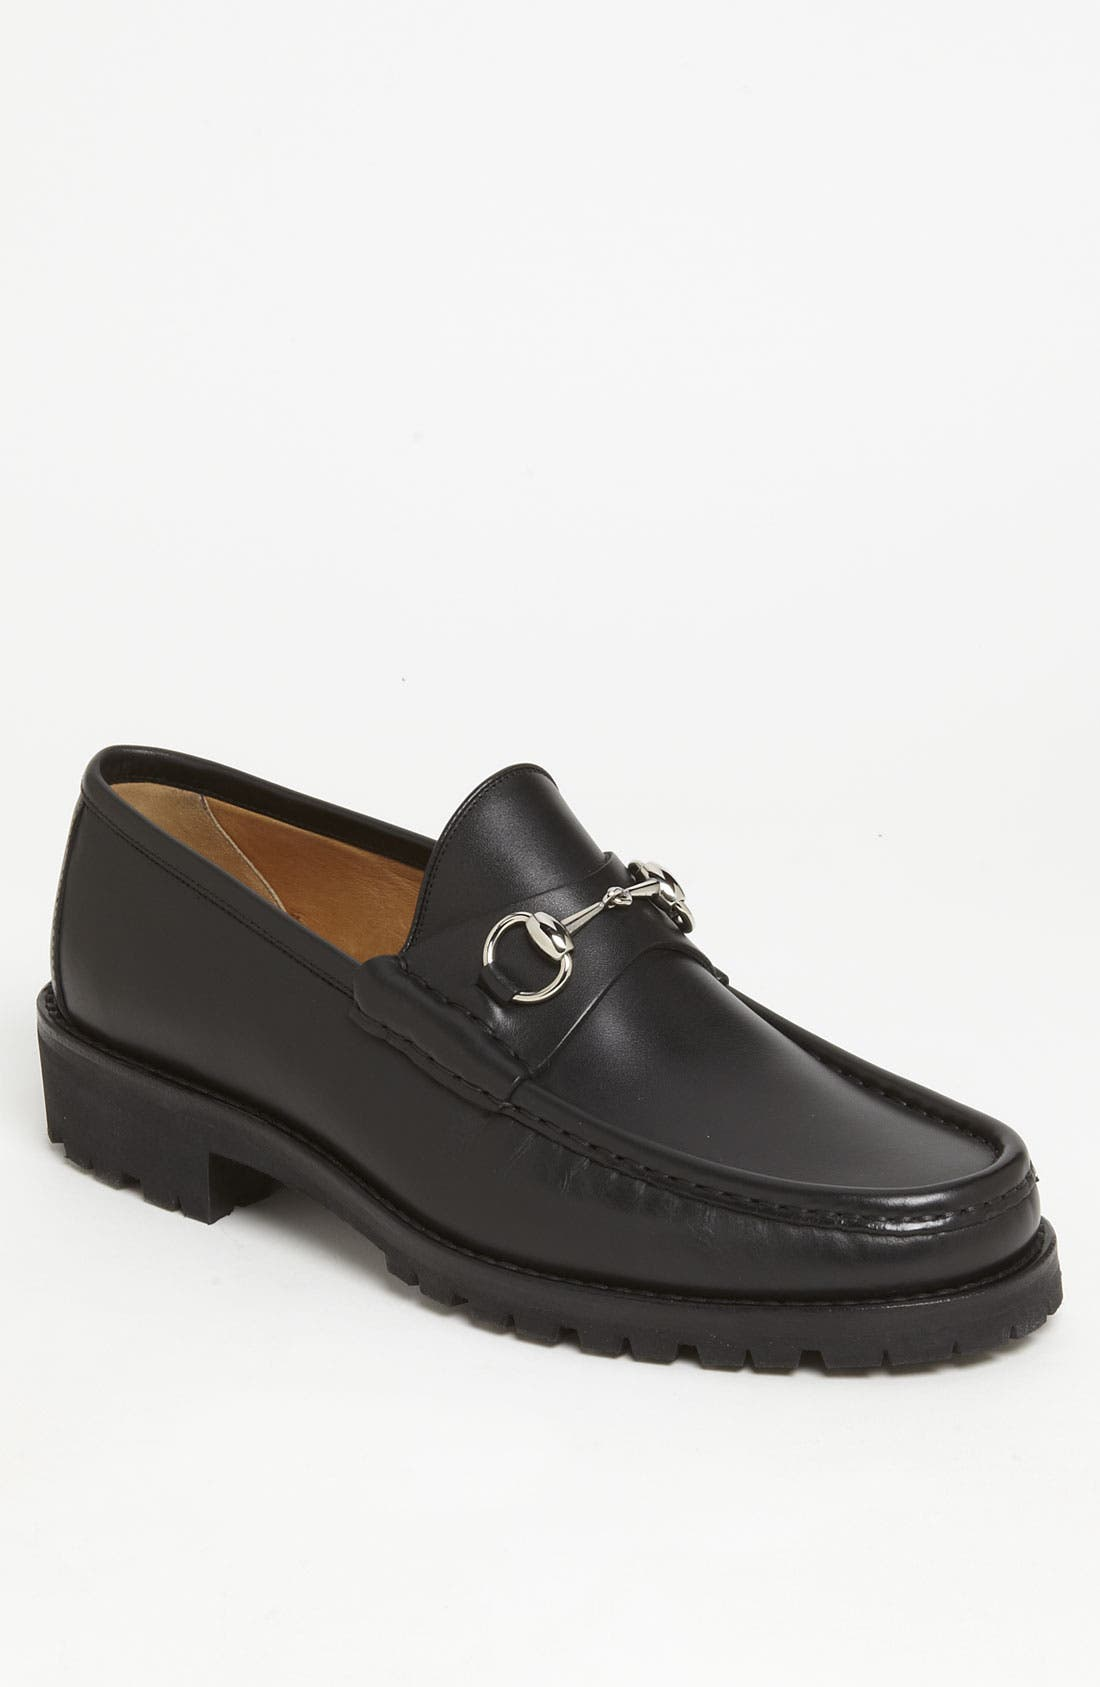 Alternate Image 1 Selected - Gucci Classic Lug Sole Moccasin